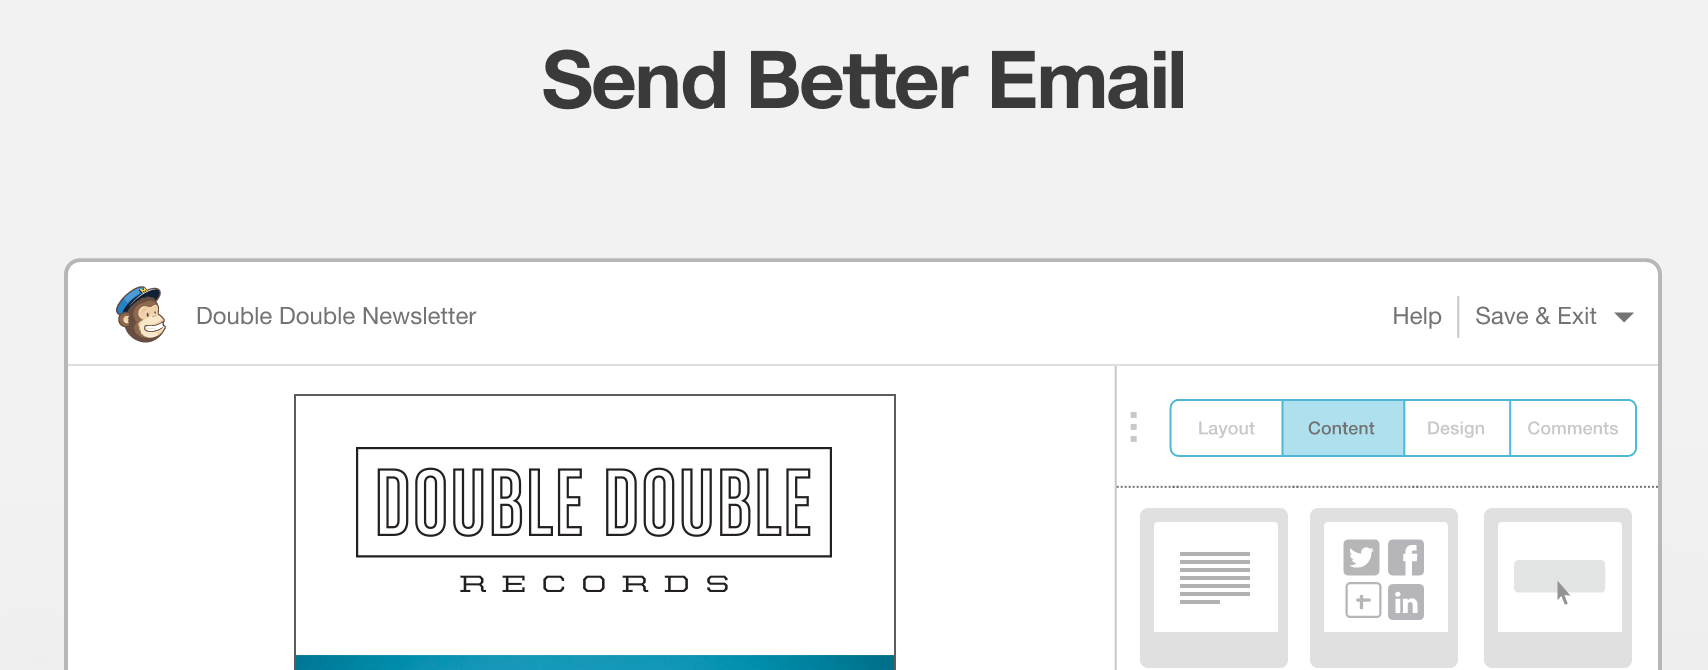 Send_Better_Email___MailChimp